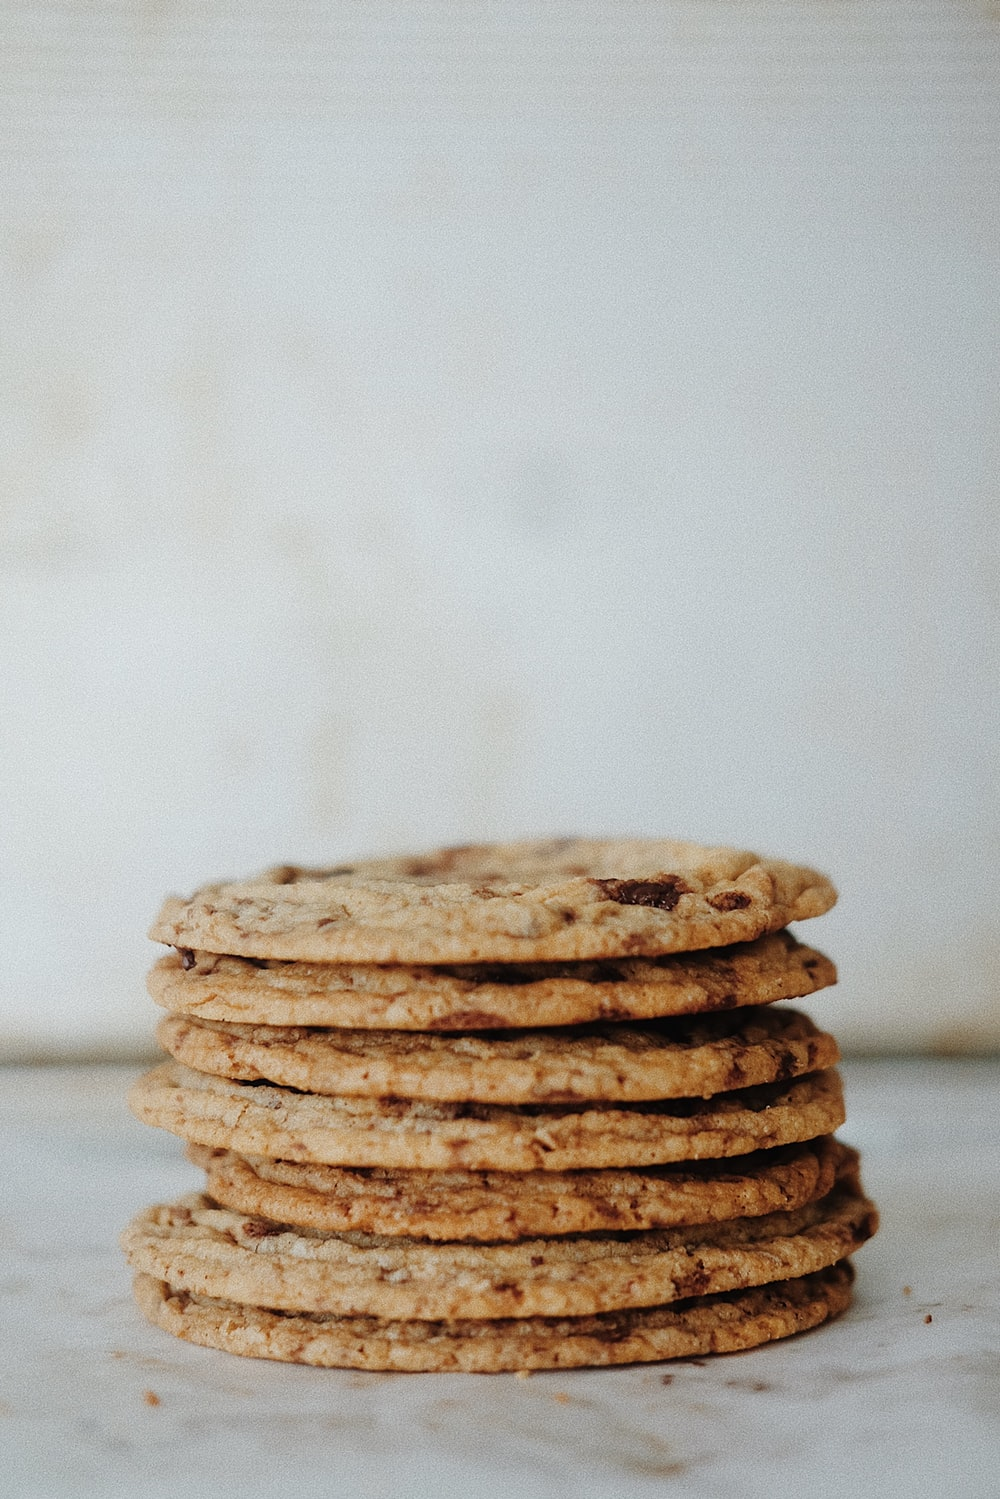 stack of cookies on white table